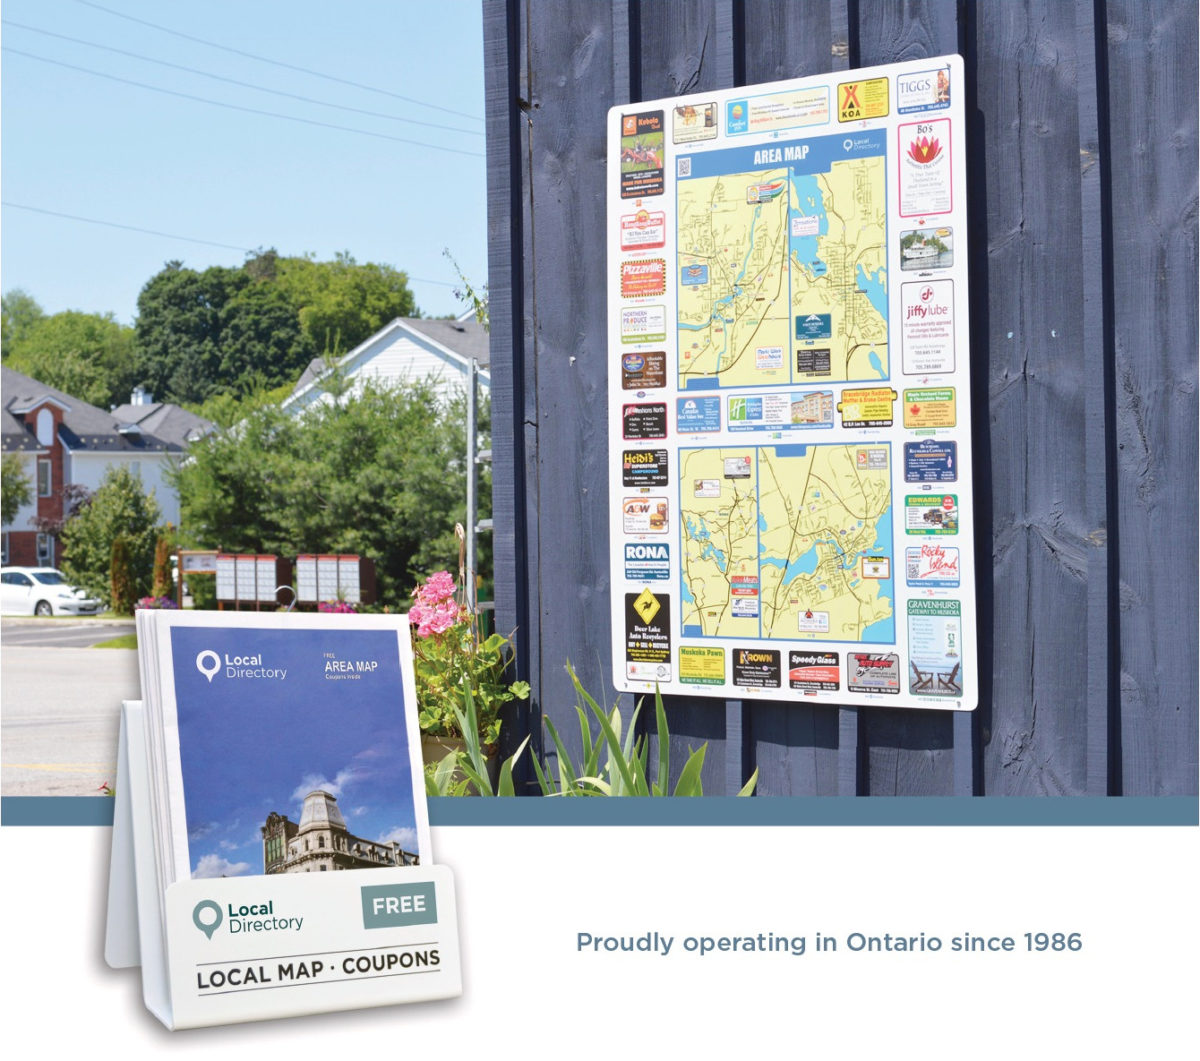 Local Directory - Proudly operating in Ontario since 1986